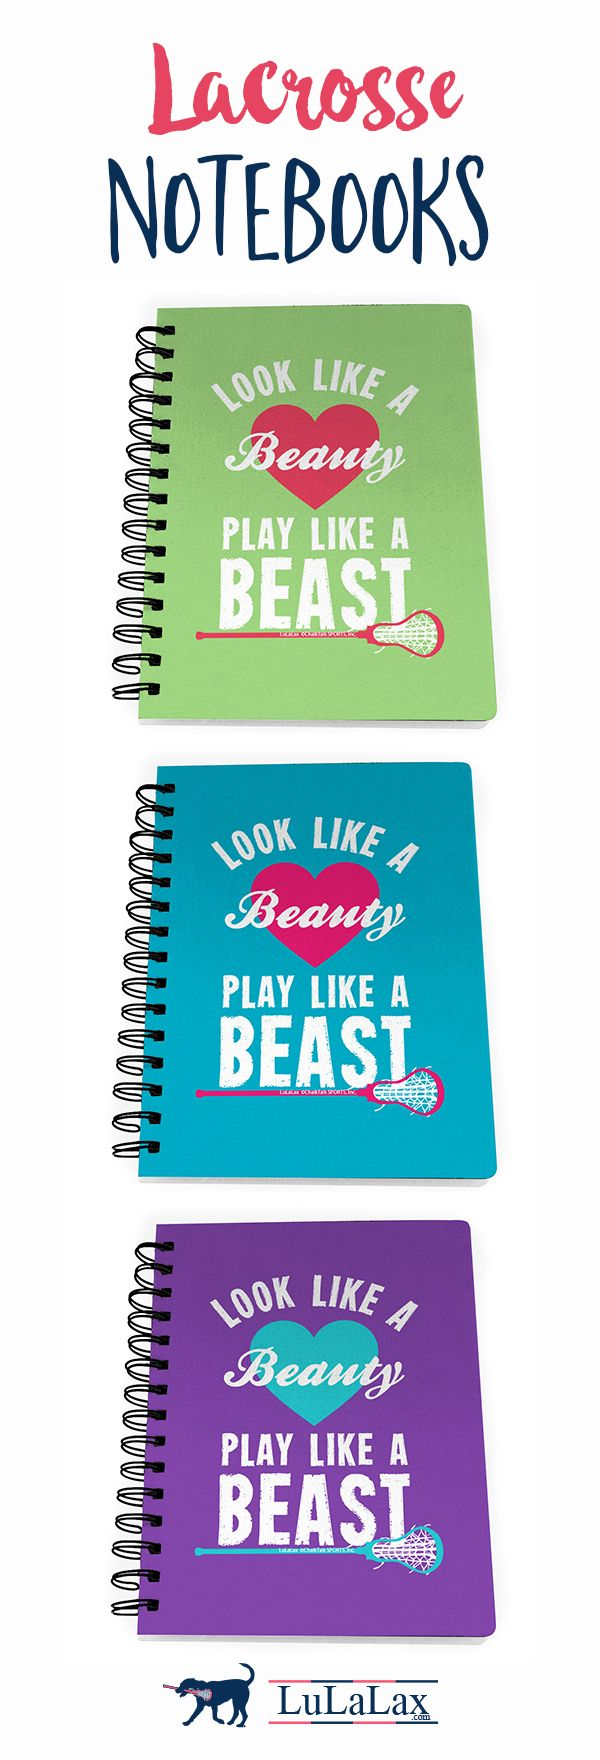 Our adorable spiral-bound notebooks are the perfect back to school gift for  your lax girl!